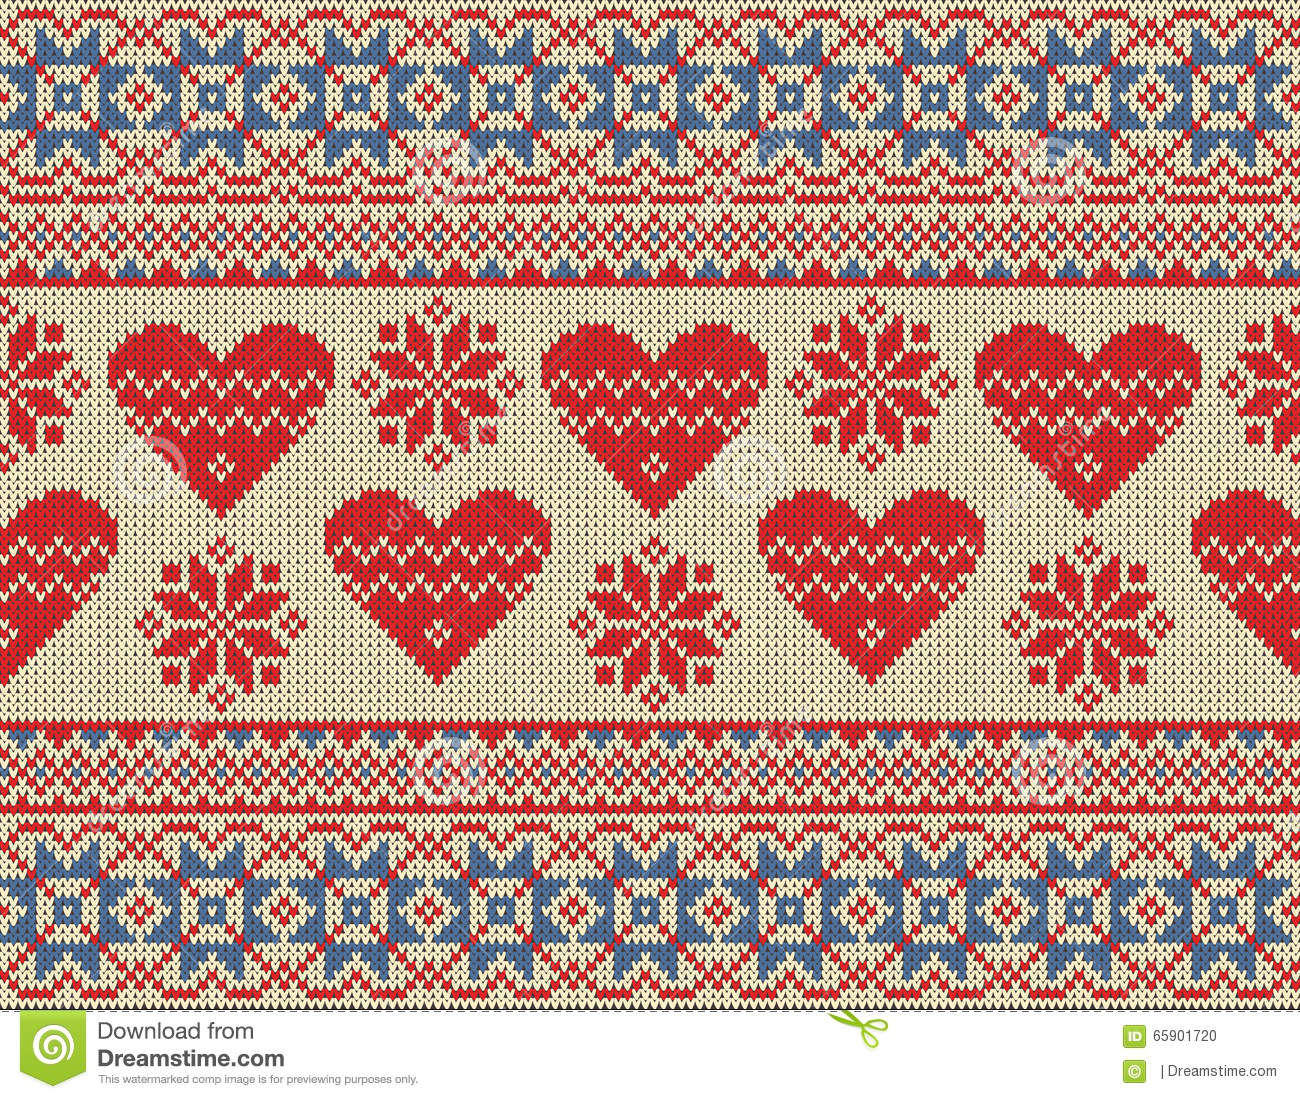 Seamless Pattern On The Theme Of Valentine\'s Day With An Image Of ...